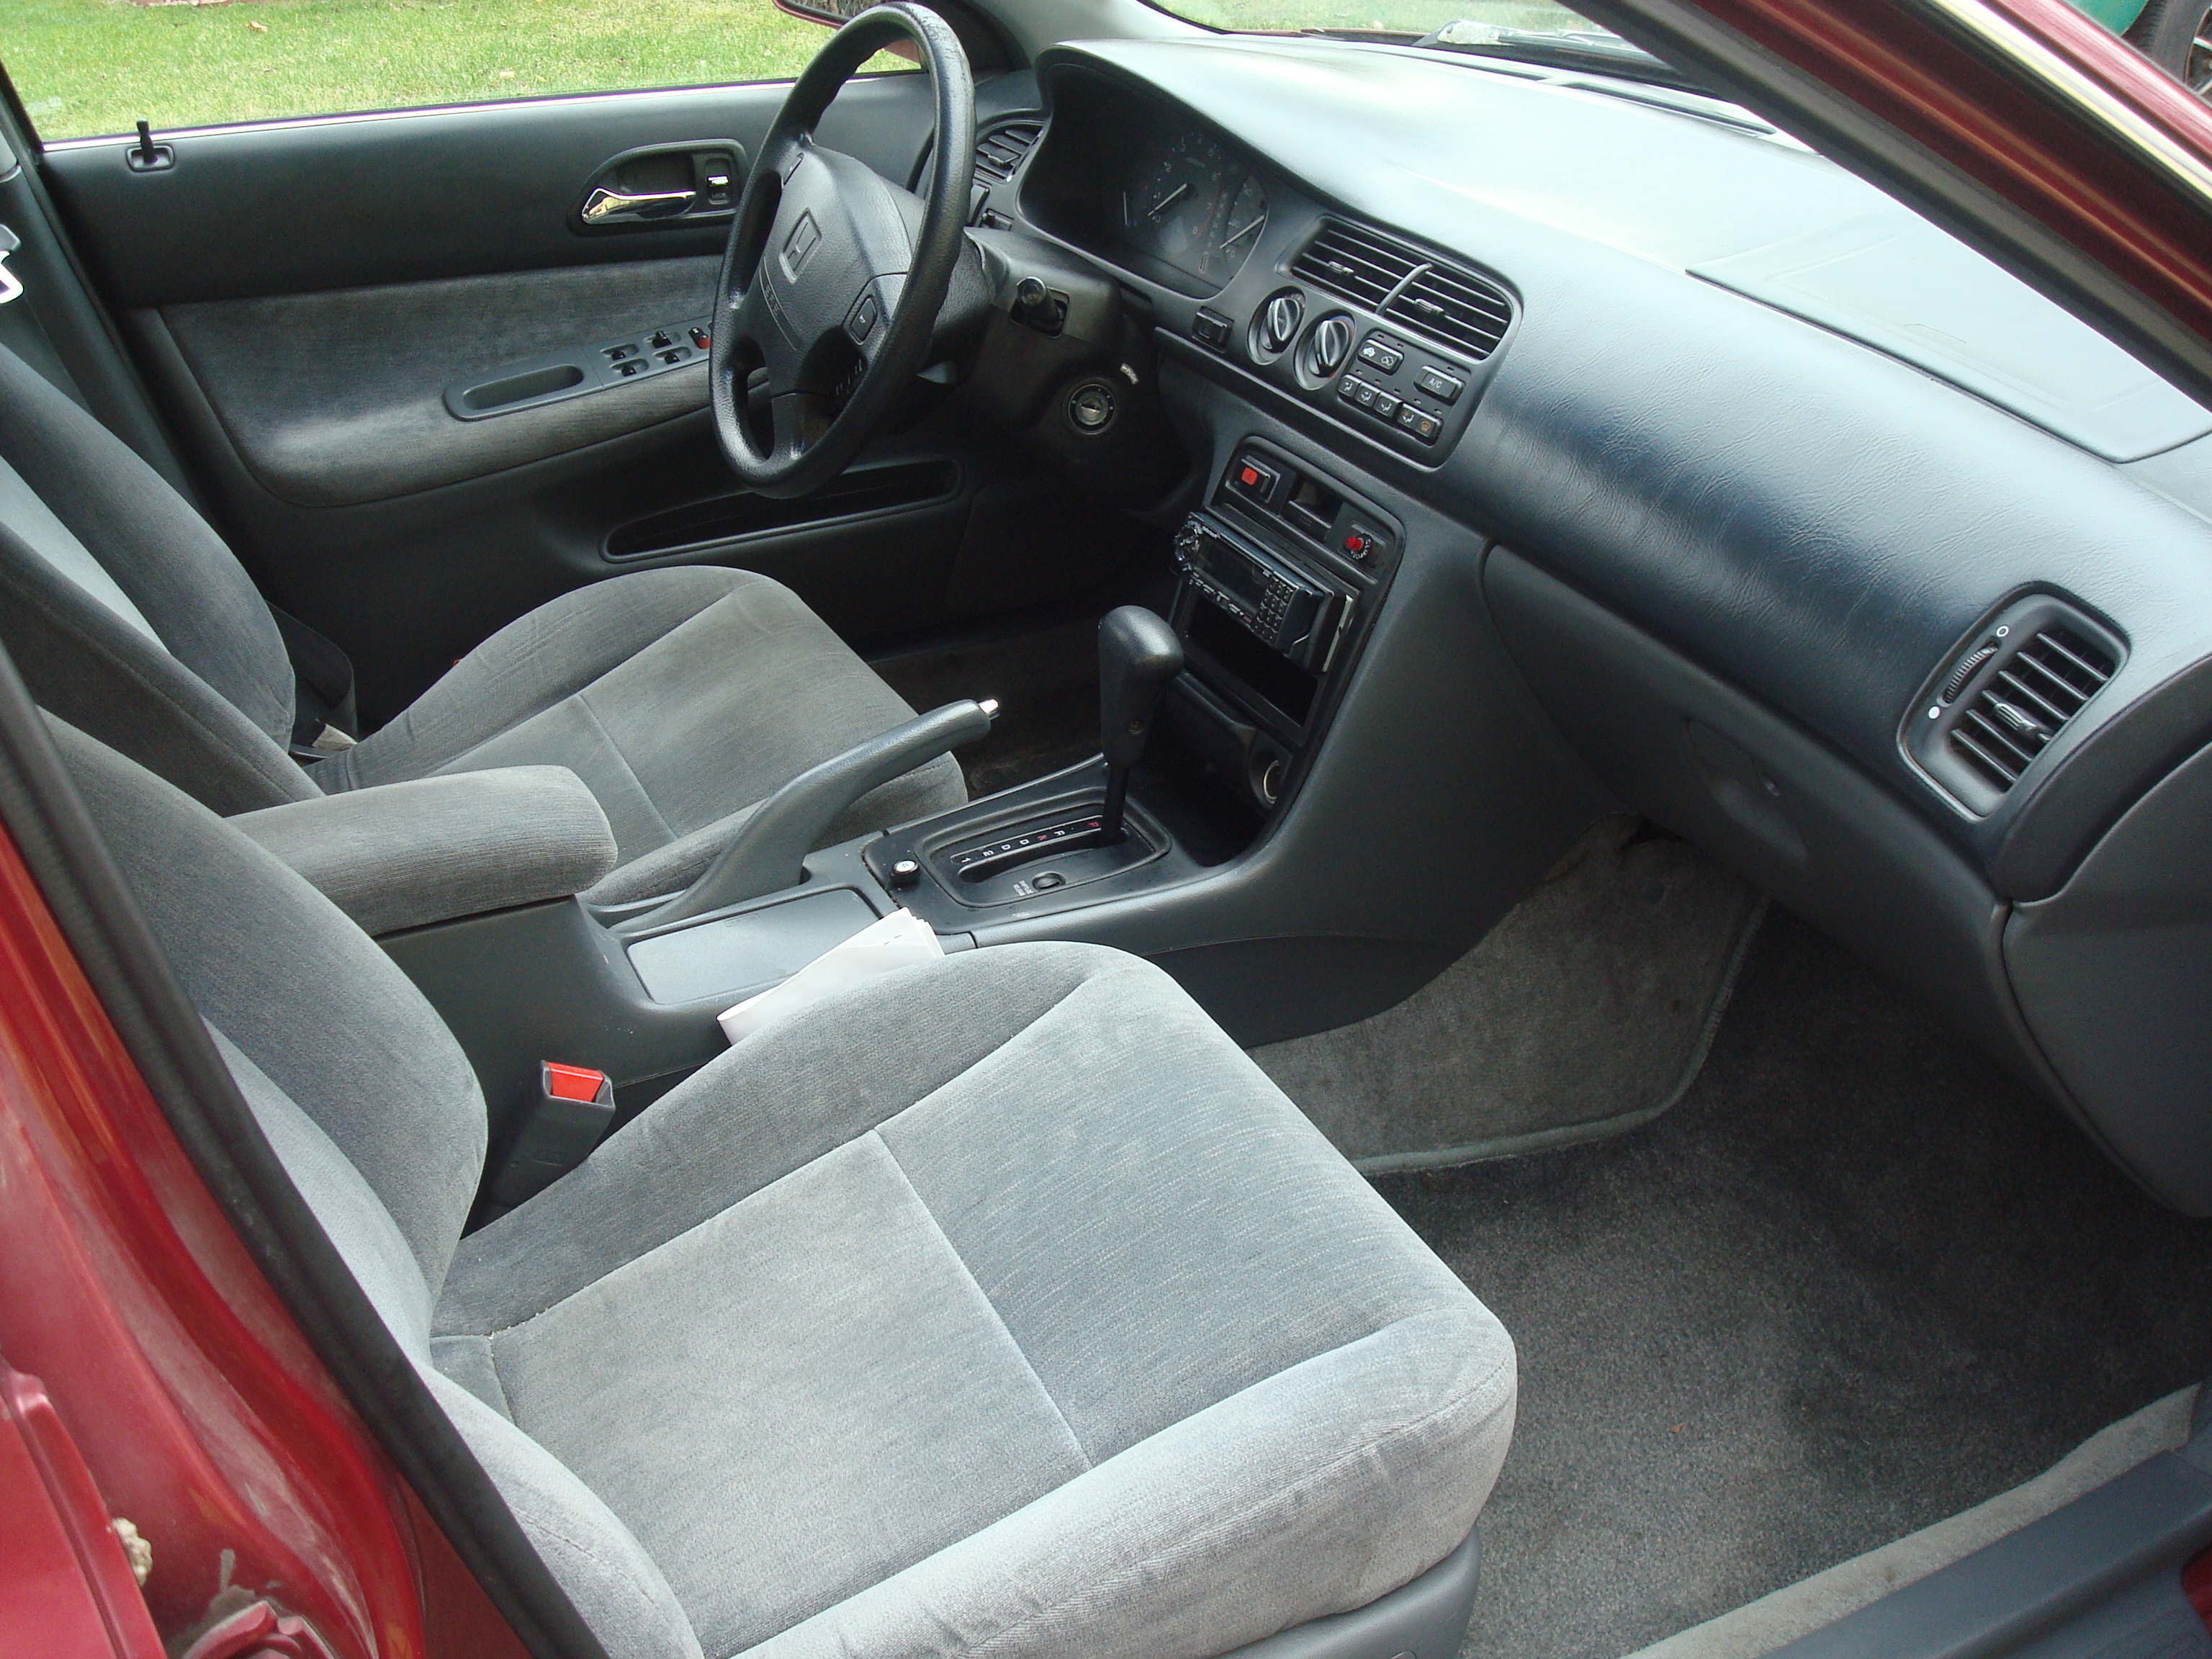 file 1994 honda accord interior jpg wikimedia commons. Black Bedroom Furniture Sets. Home Design Ideas